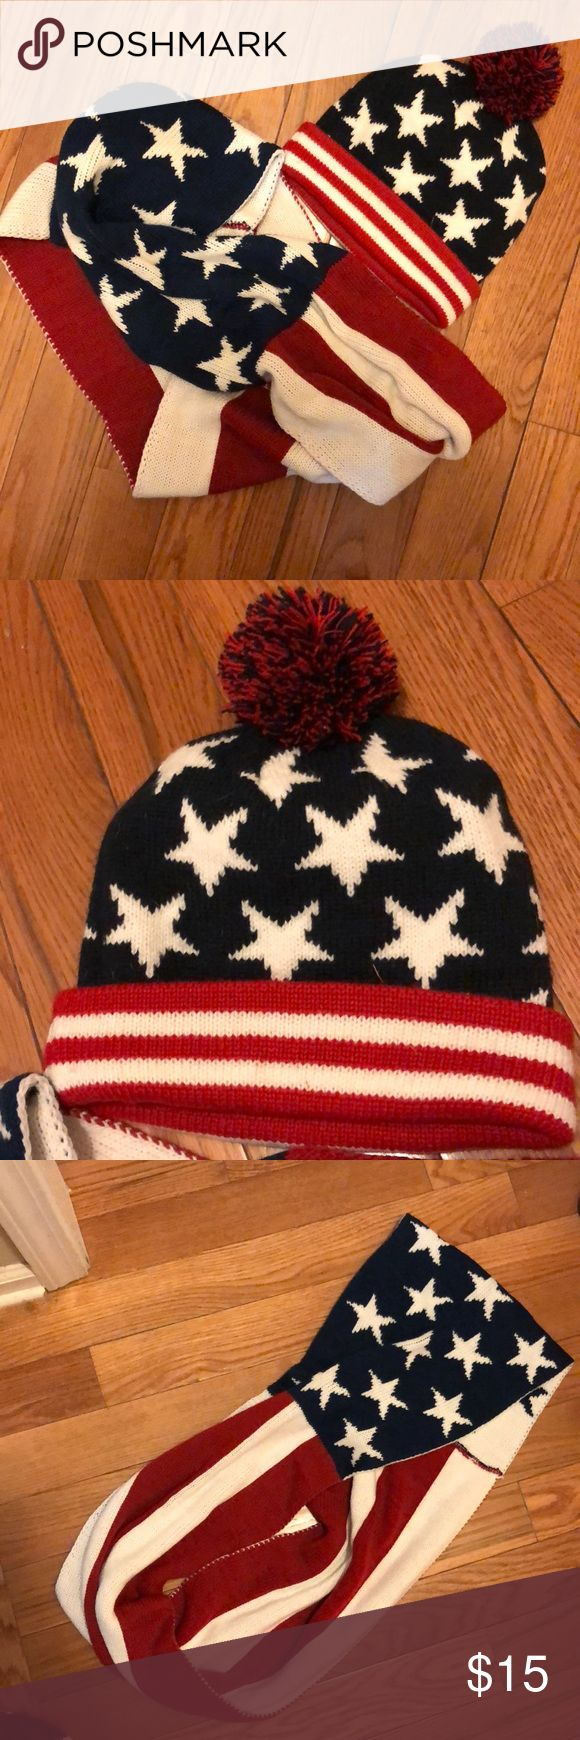 American Flag Scarf and Hat Old together or seperate! An American flag beanie with infinity scarf! Small stain on scarf that can be covered if layered scarf to cover! Accessories Scarves & Wraps